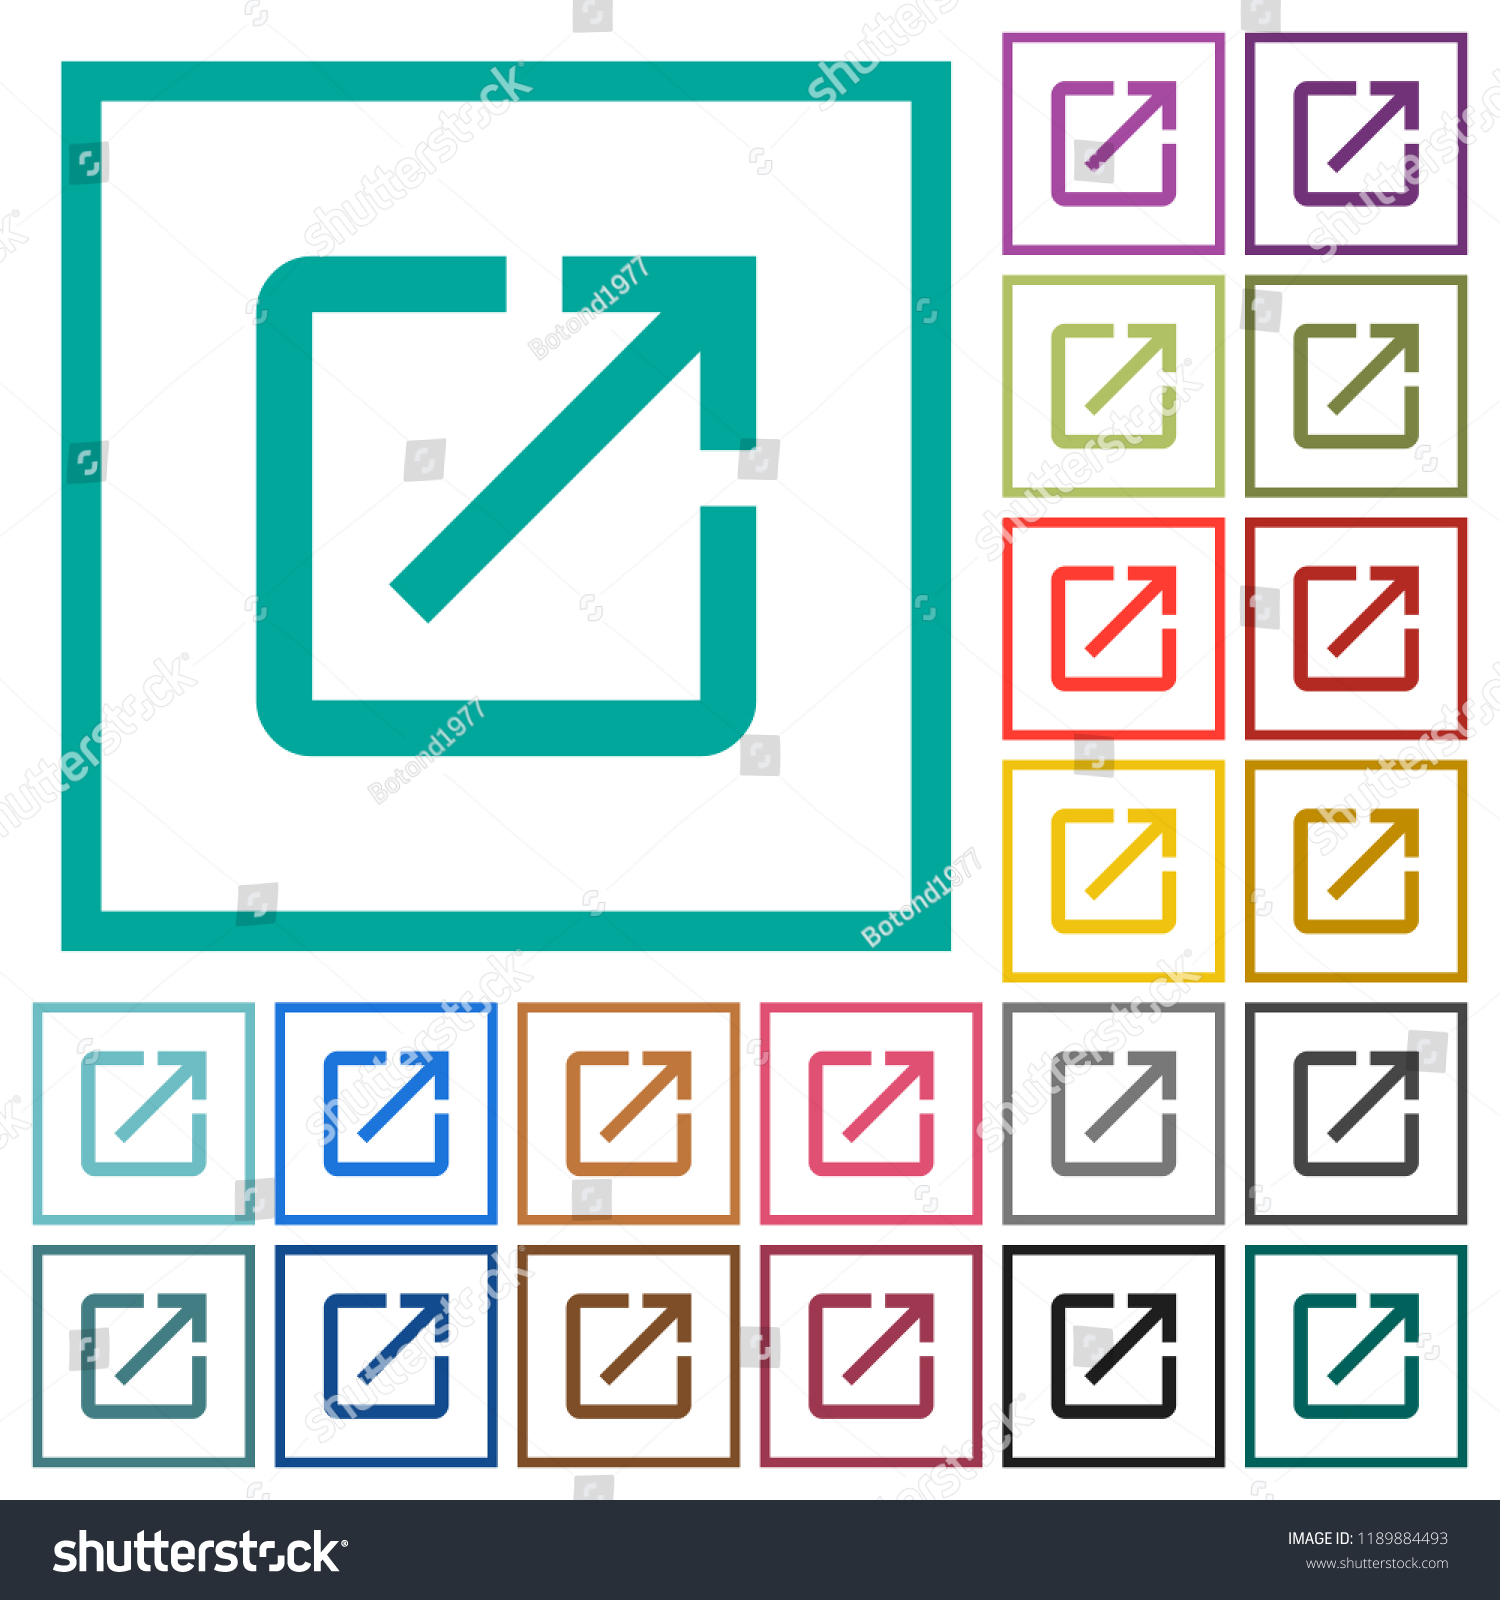 Launch Application Flat Color Icons Quadrant Stock Vector (Royalty ...